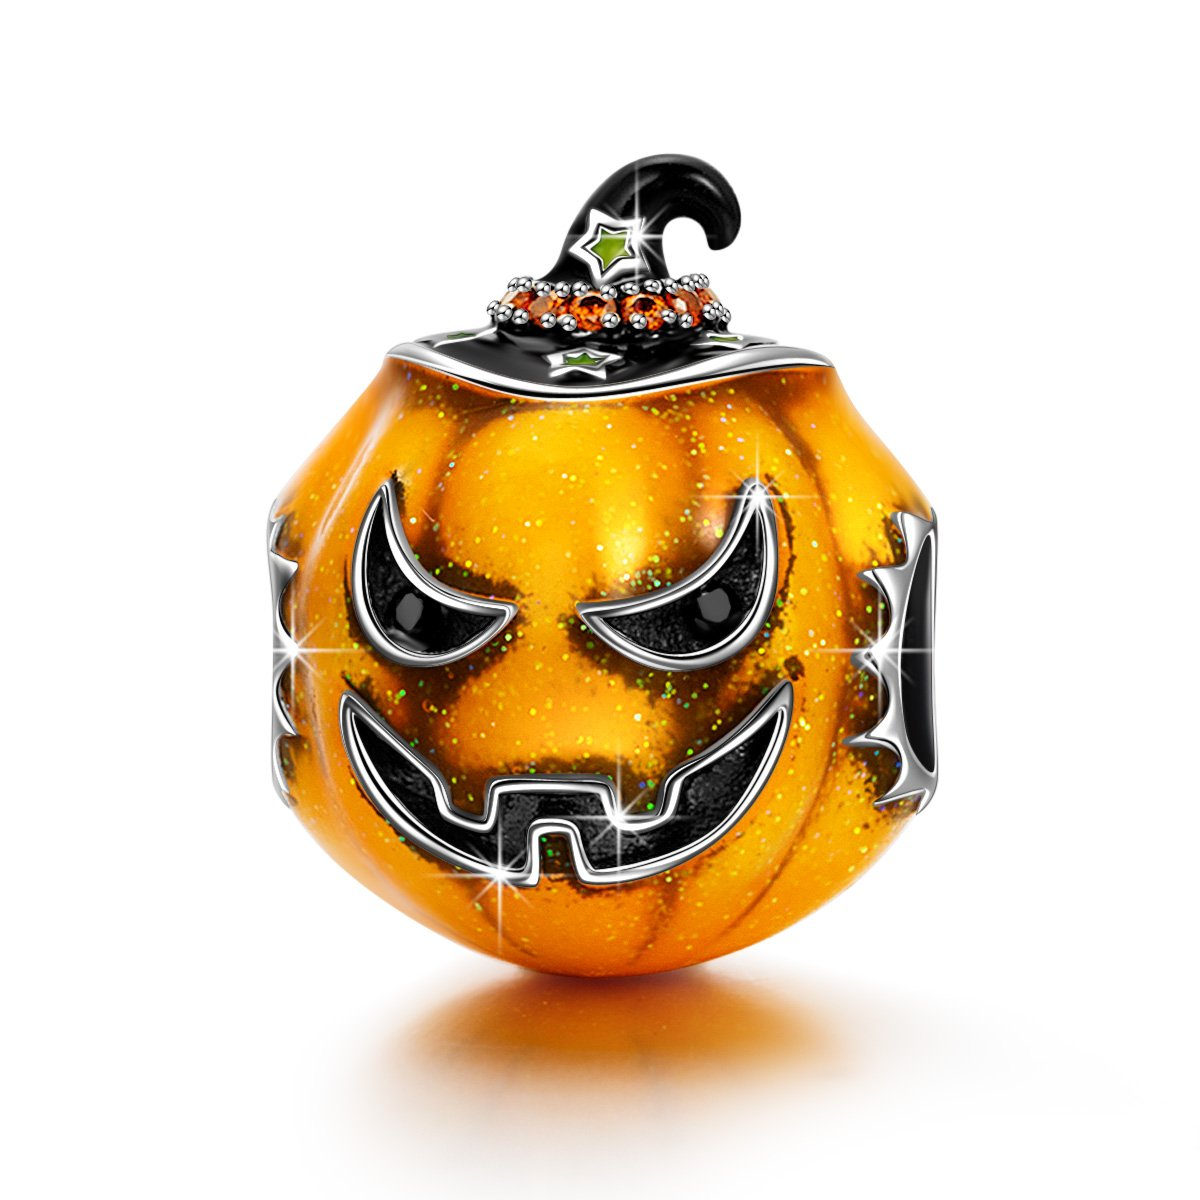 NINAQUEEN The Light of Halloween -Buy One Charm Get One Silver Necklace- 925 Sterling Silver Halloween Pumpkin Charms, Best Halloween Jewelry Gifts for Women pandöra charms Halloween Gifts CSG05635BY